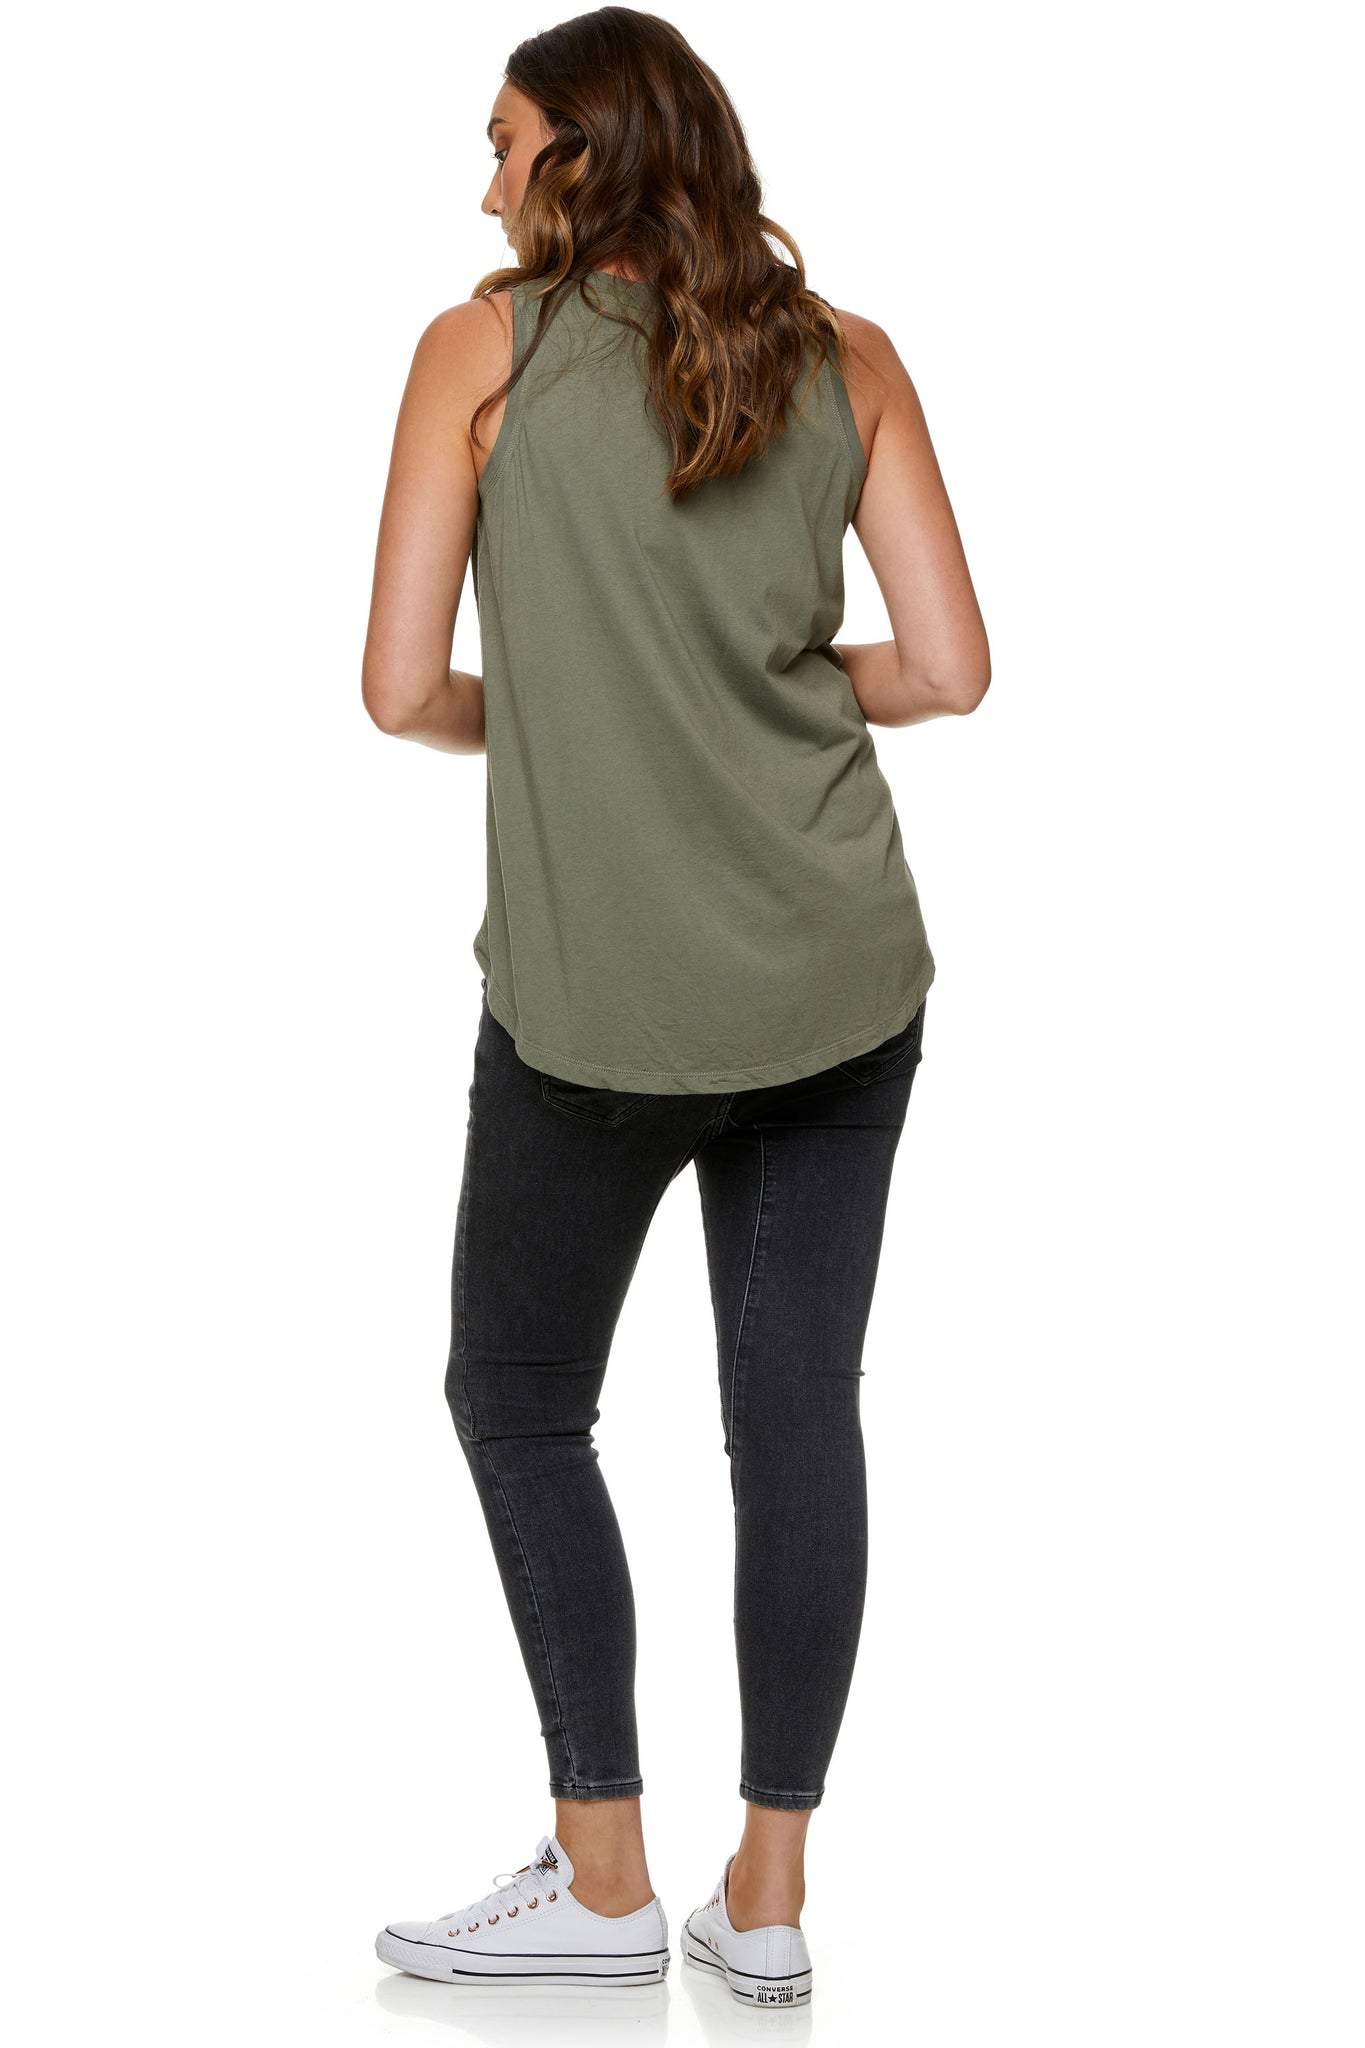 Maternity tank top Khaki 5